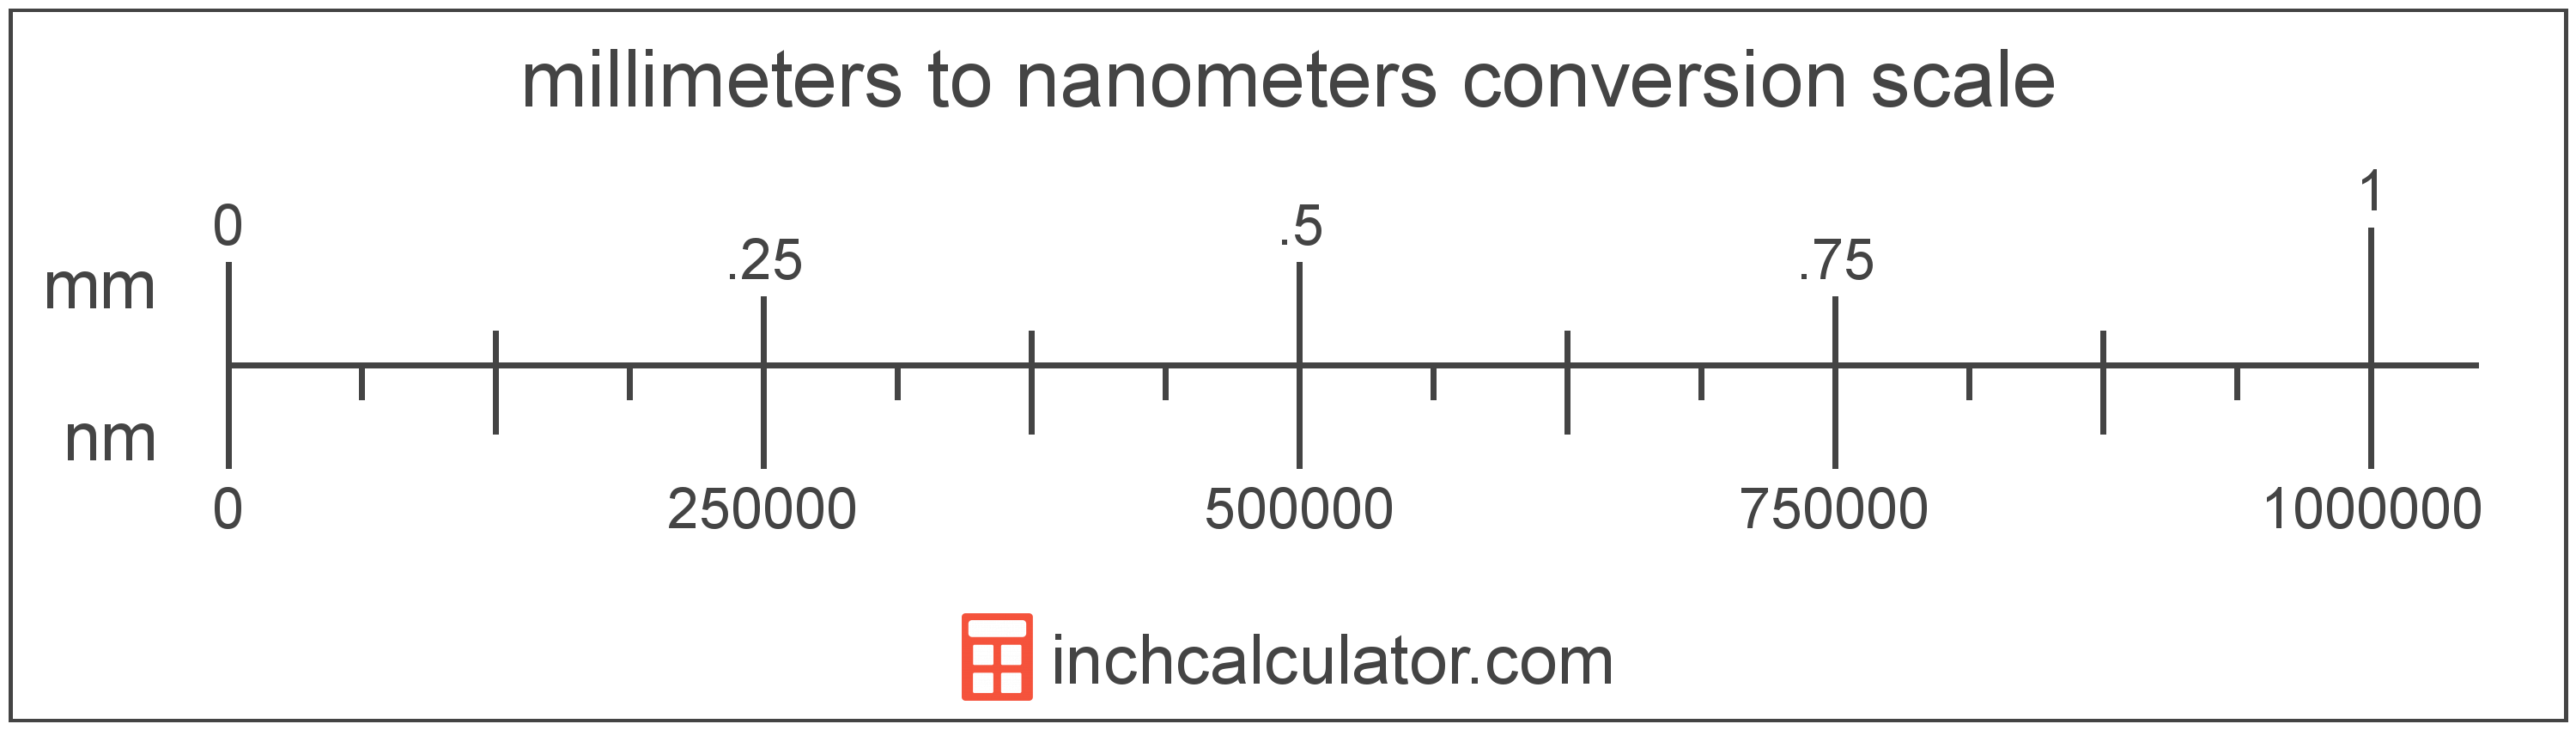 conversion scale showing millimeters and equivalent nanometers length values